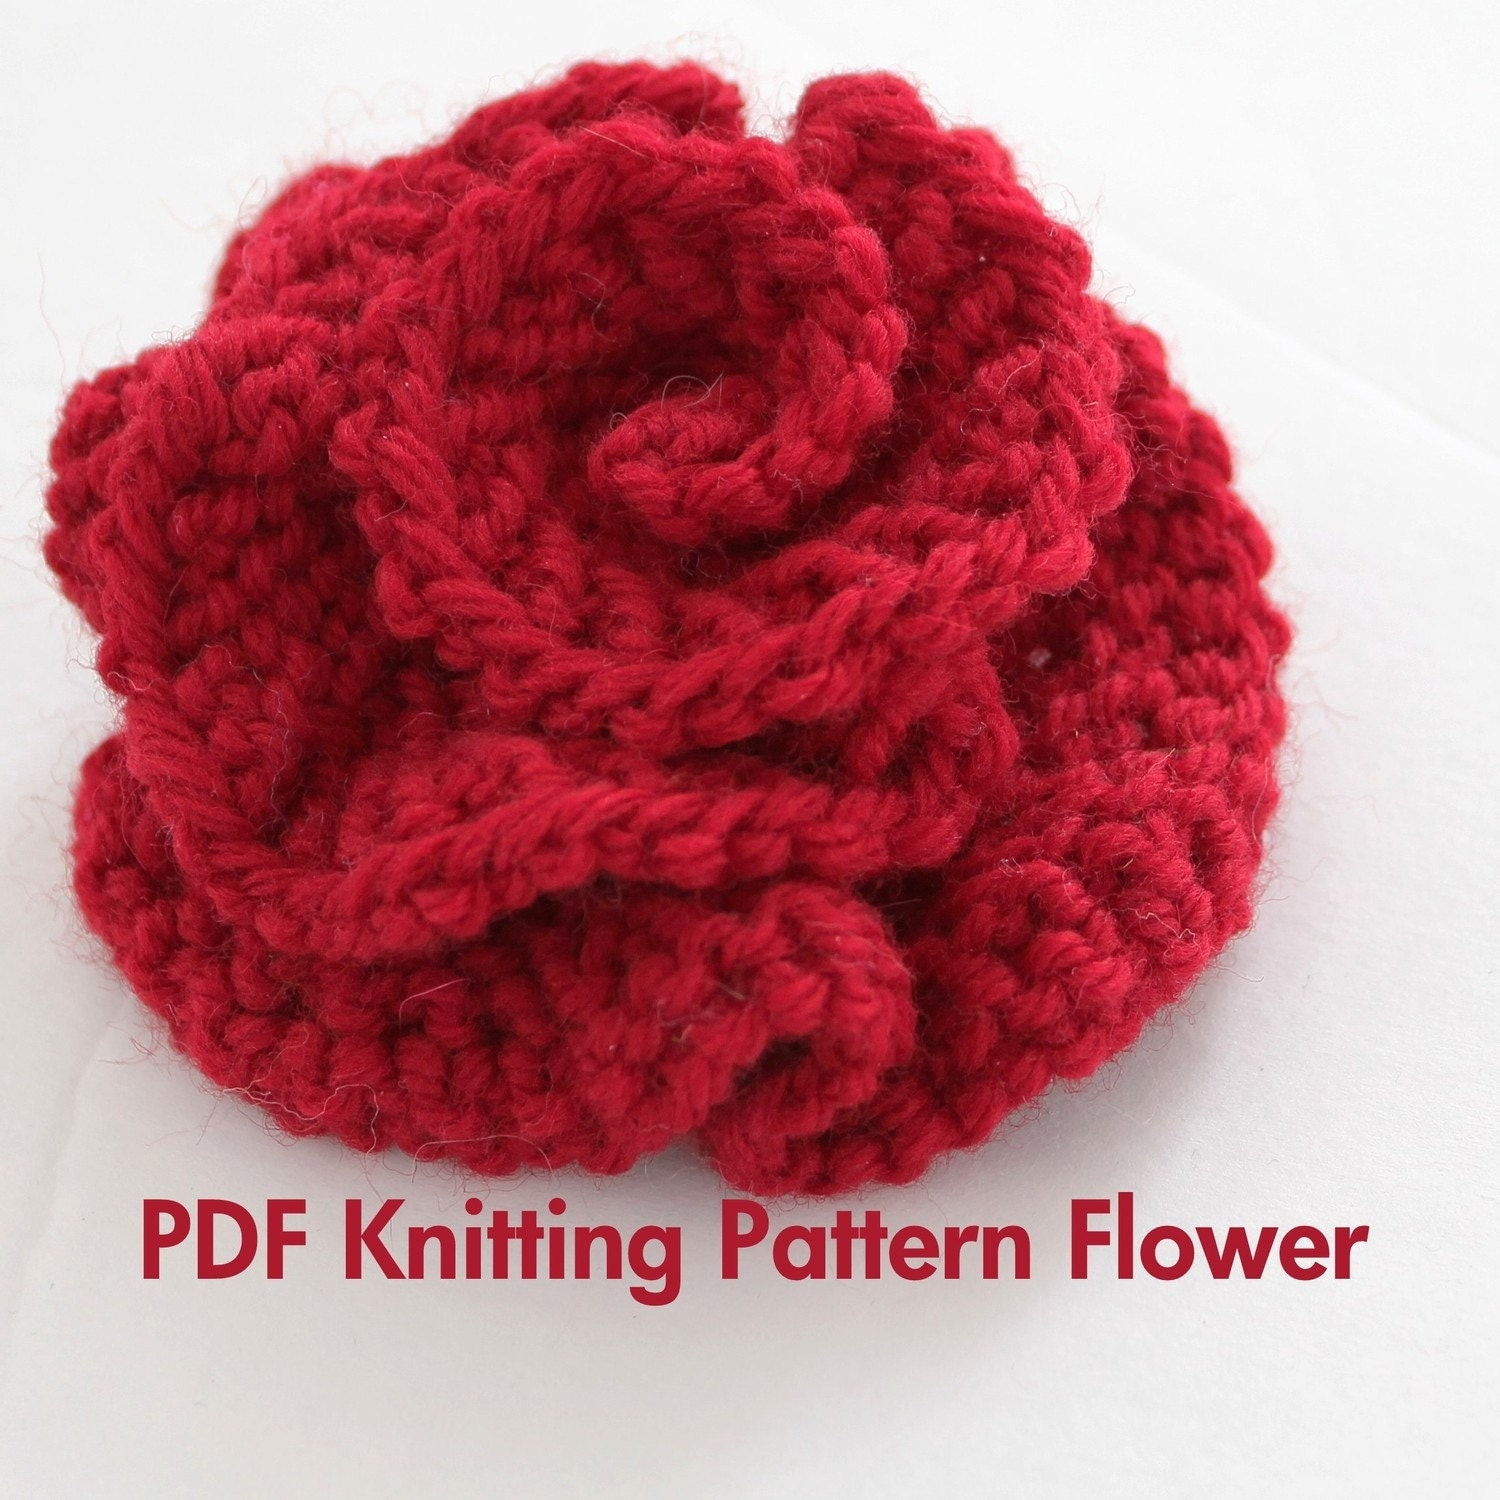 Knitted Headband Patterns With Flower : KNITTING FLOWER PATTERNS   Browse Patterns